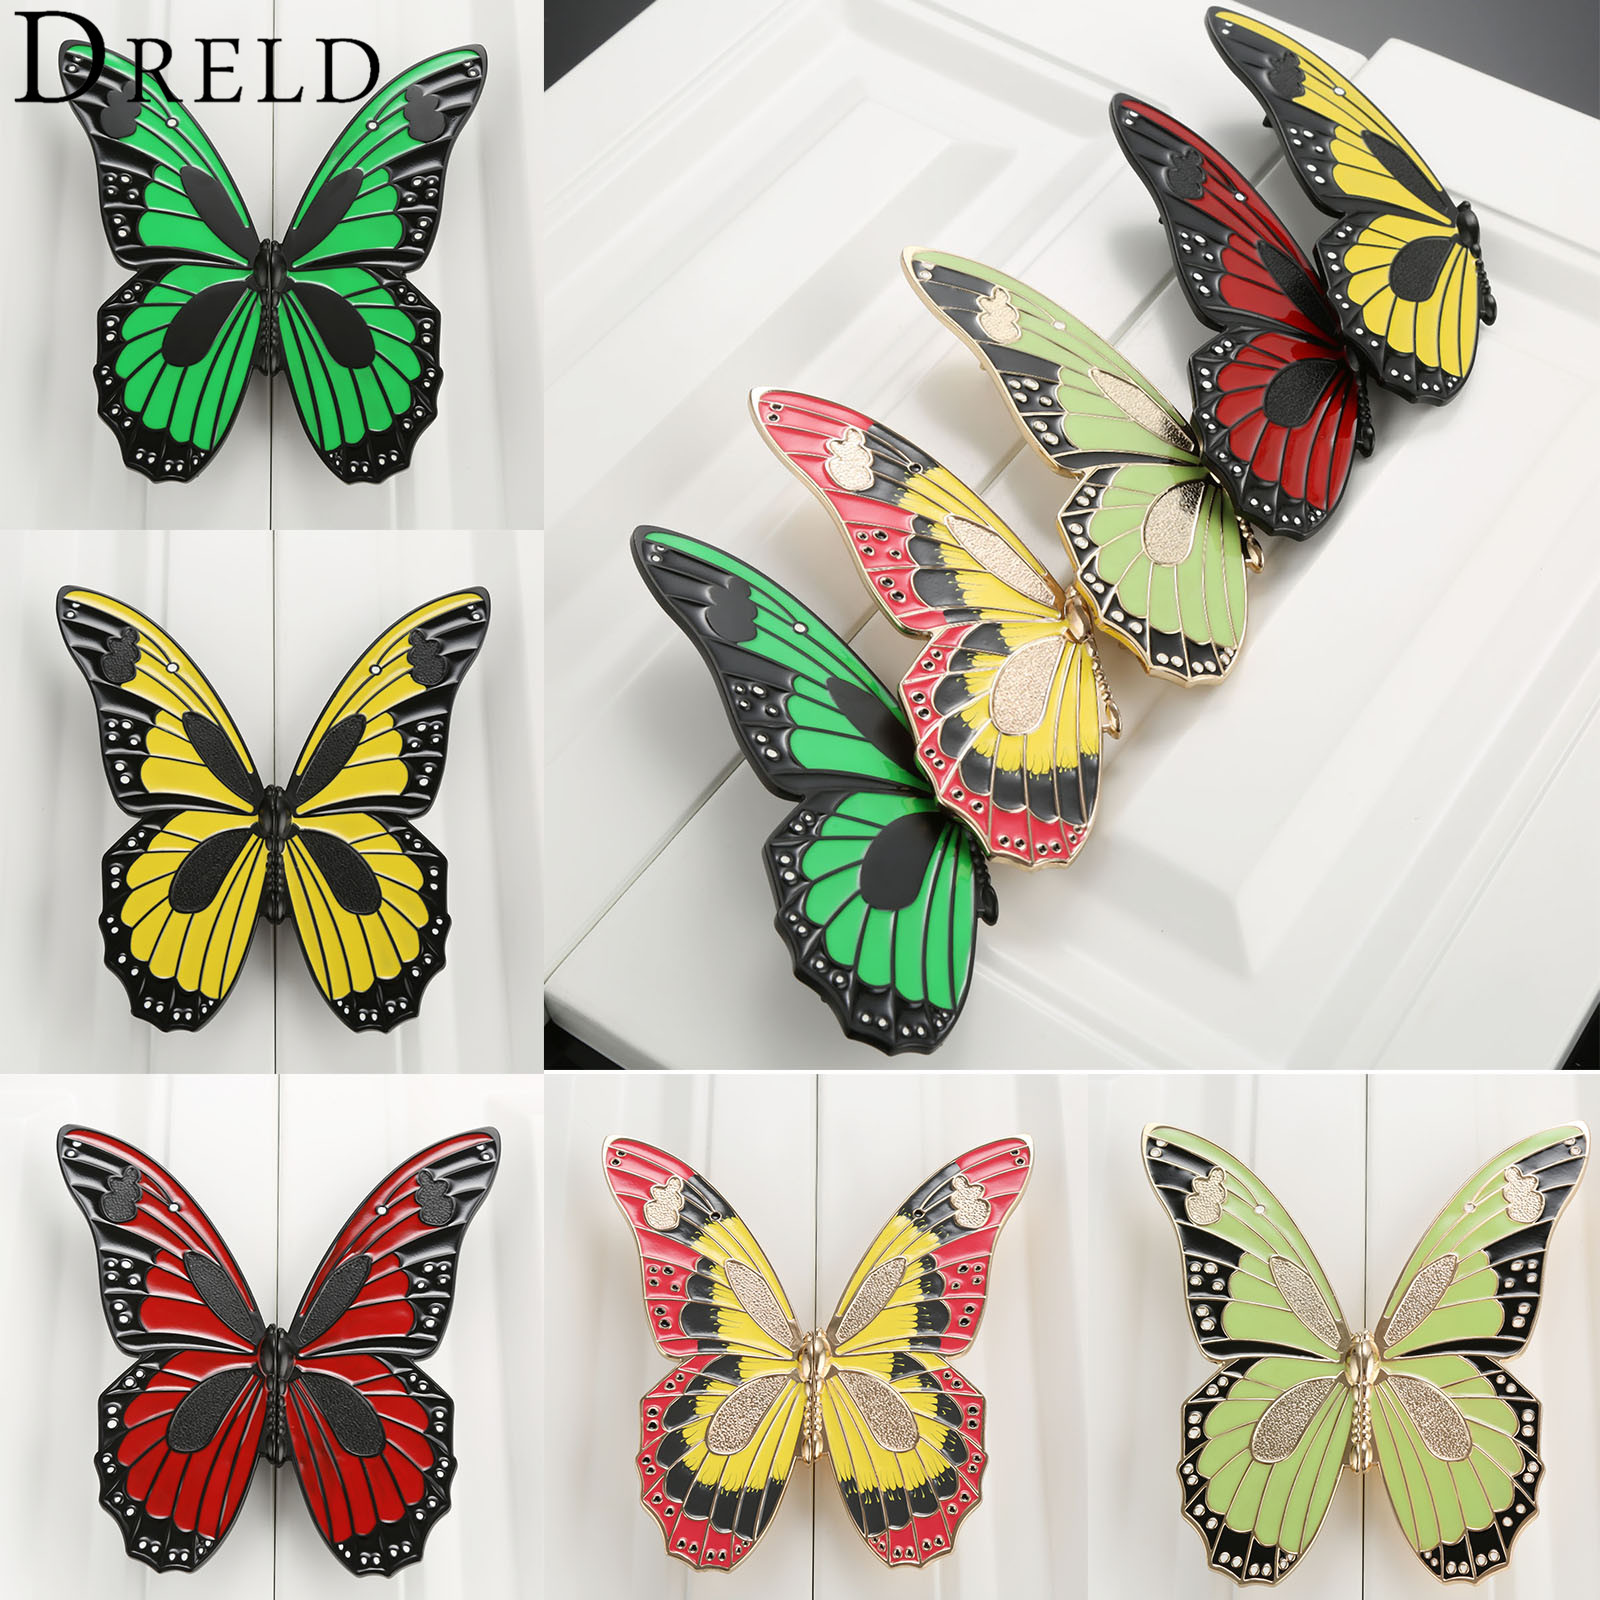 DRELD 1Pc Butterfly Furniture Handles Cabinet Knobs and Handles Zinc Alloy Door Knob Cupboard Dresser Drawer Kitchen Pull Handle